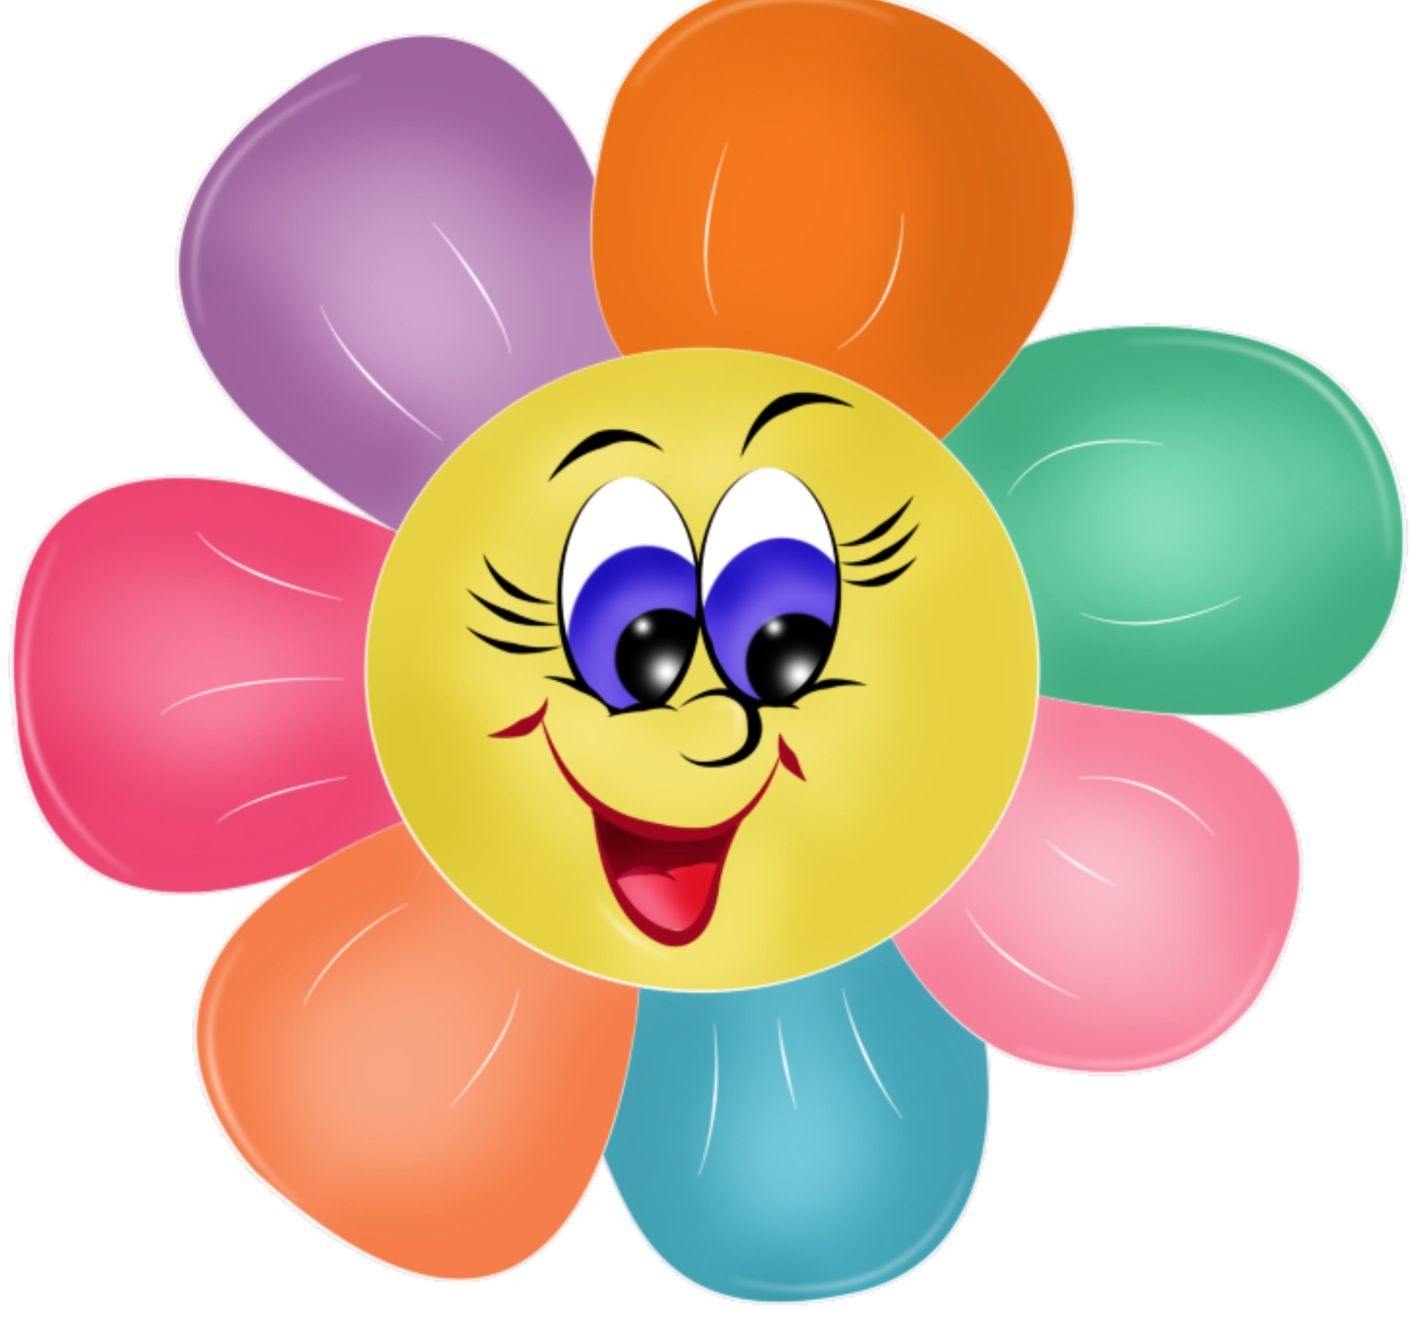 Face clipart flower. Pretty b by pinterest